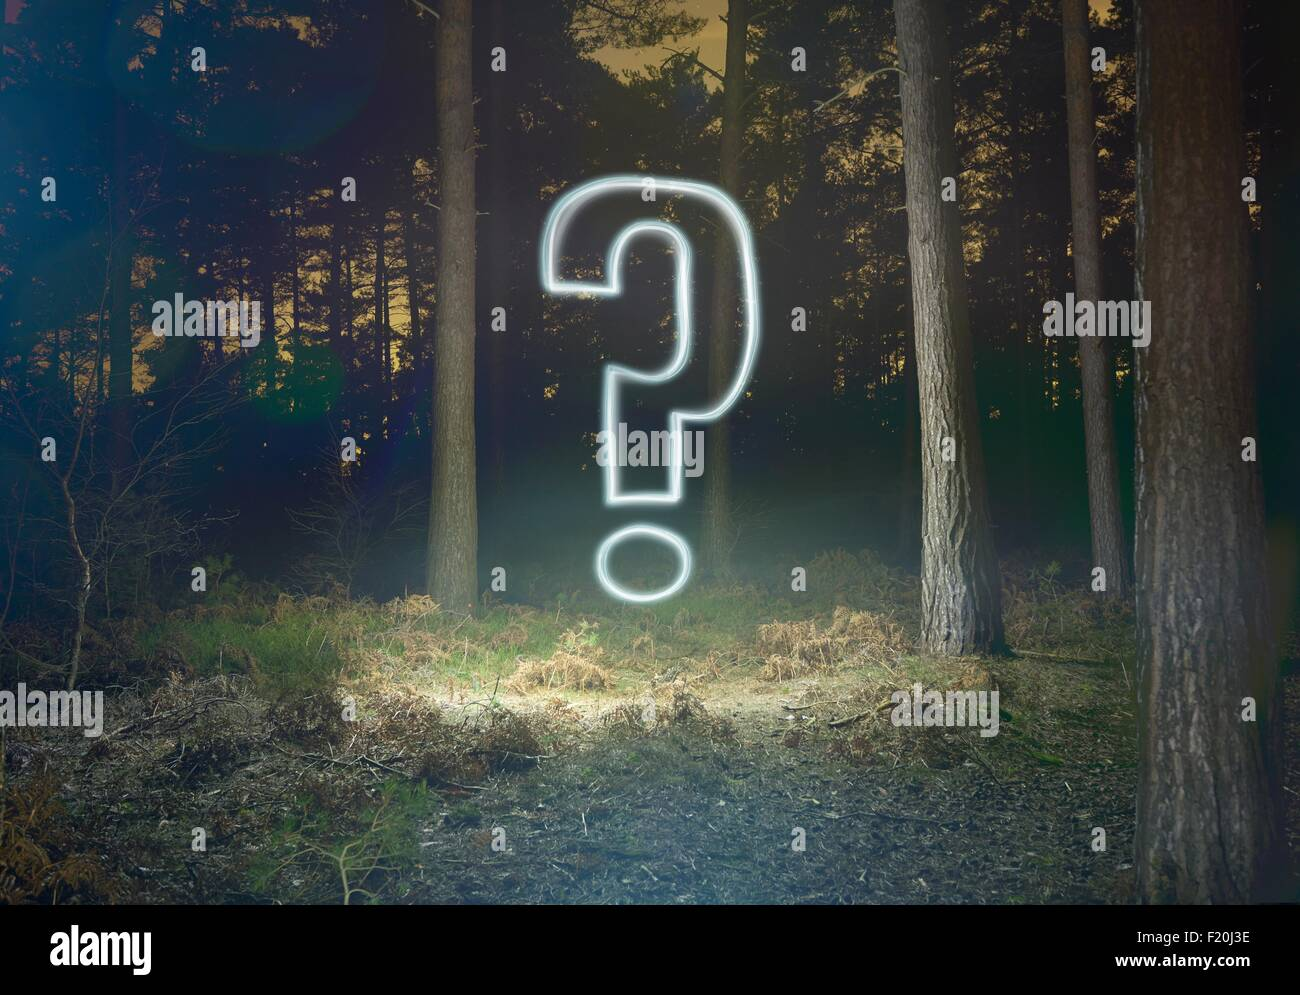 Glowing question mark symbol in forest at night - Stock Image